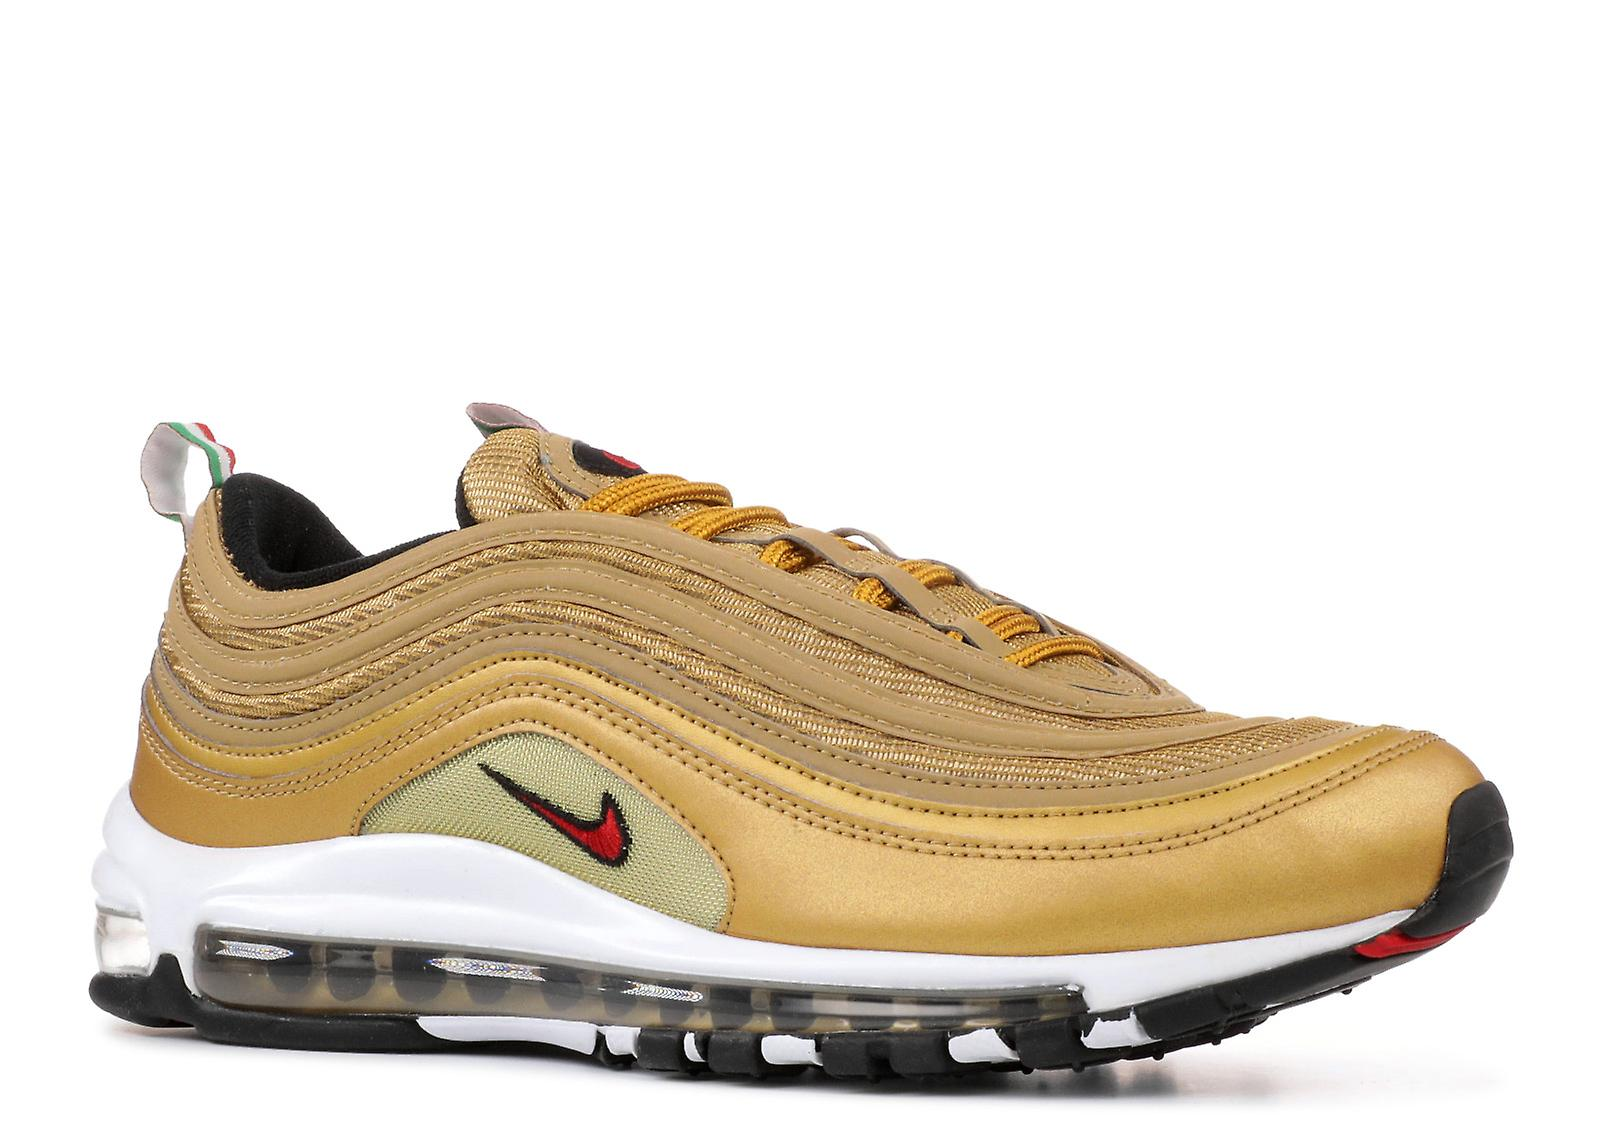 0364d58f8779e Nike Air Max 97 97 97 It   Italie   - Aj8056-700 - chaussures 811366 ...